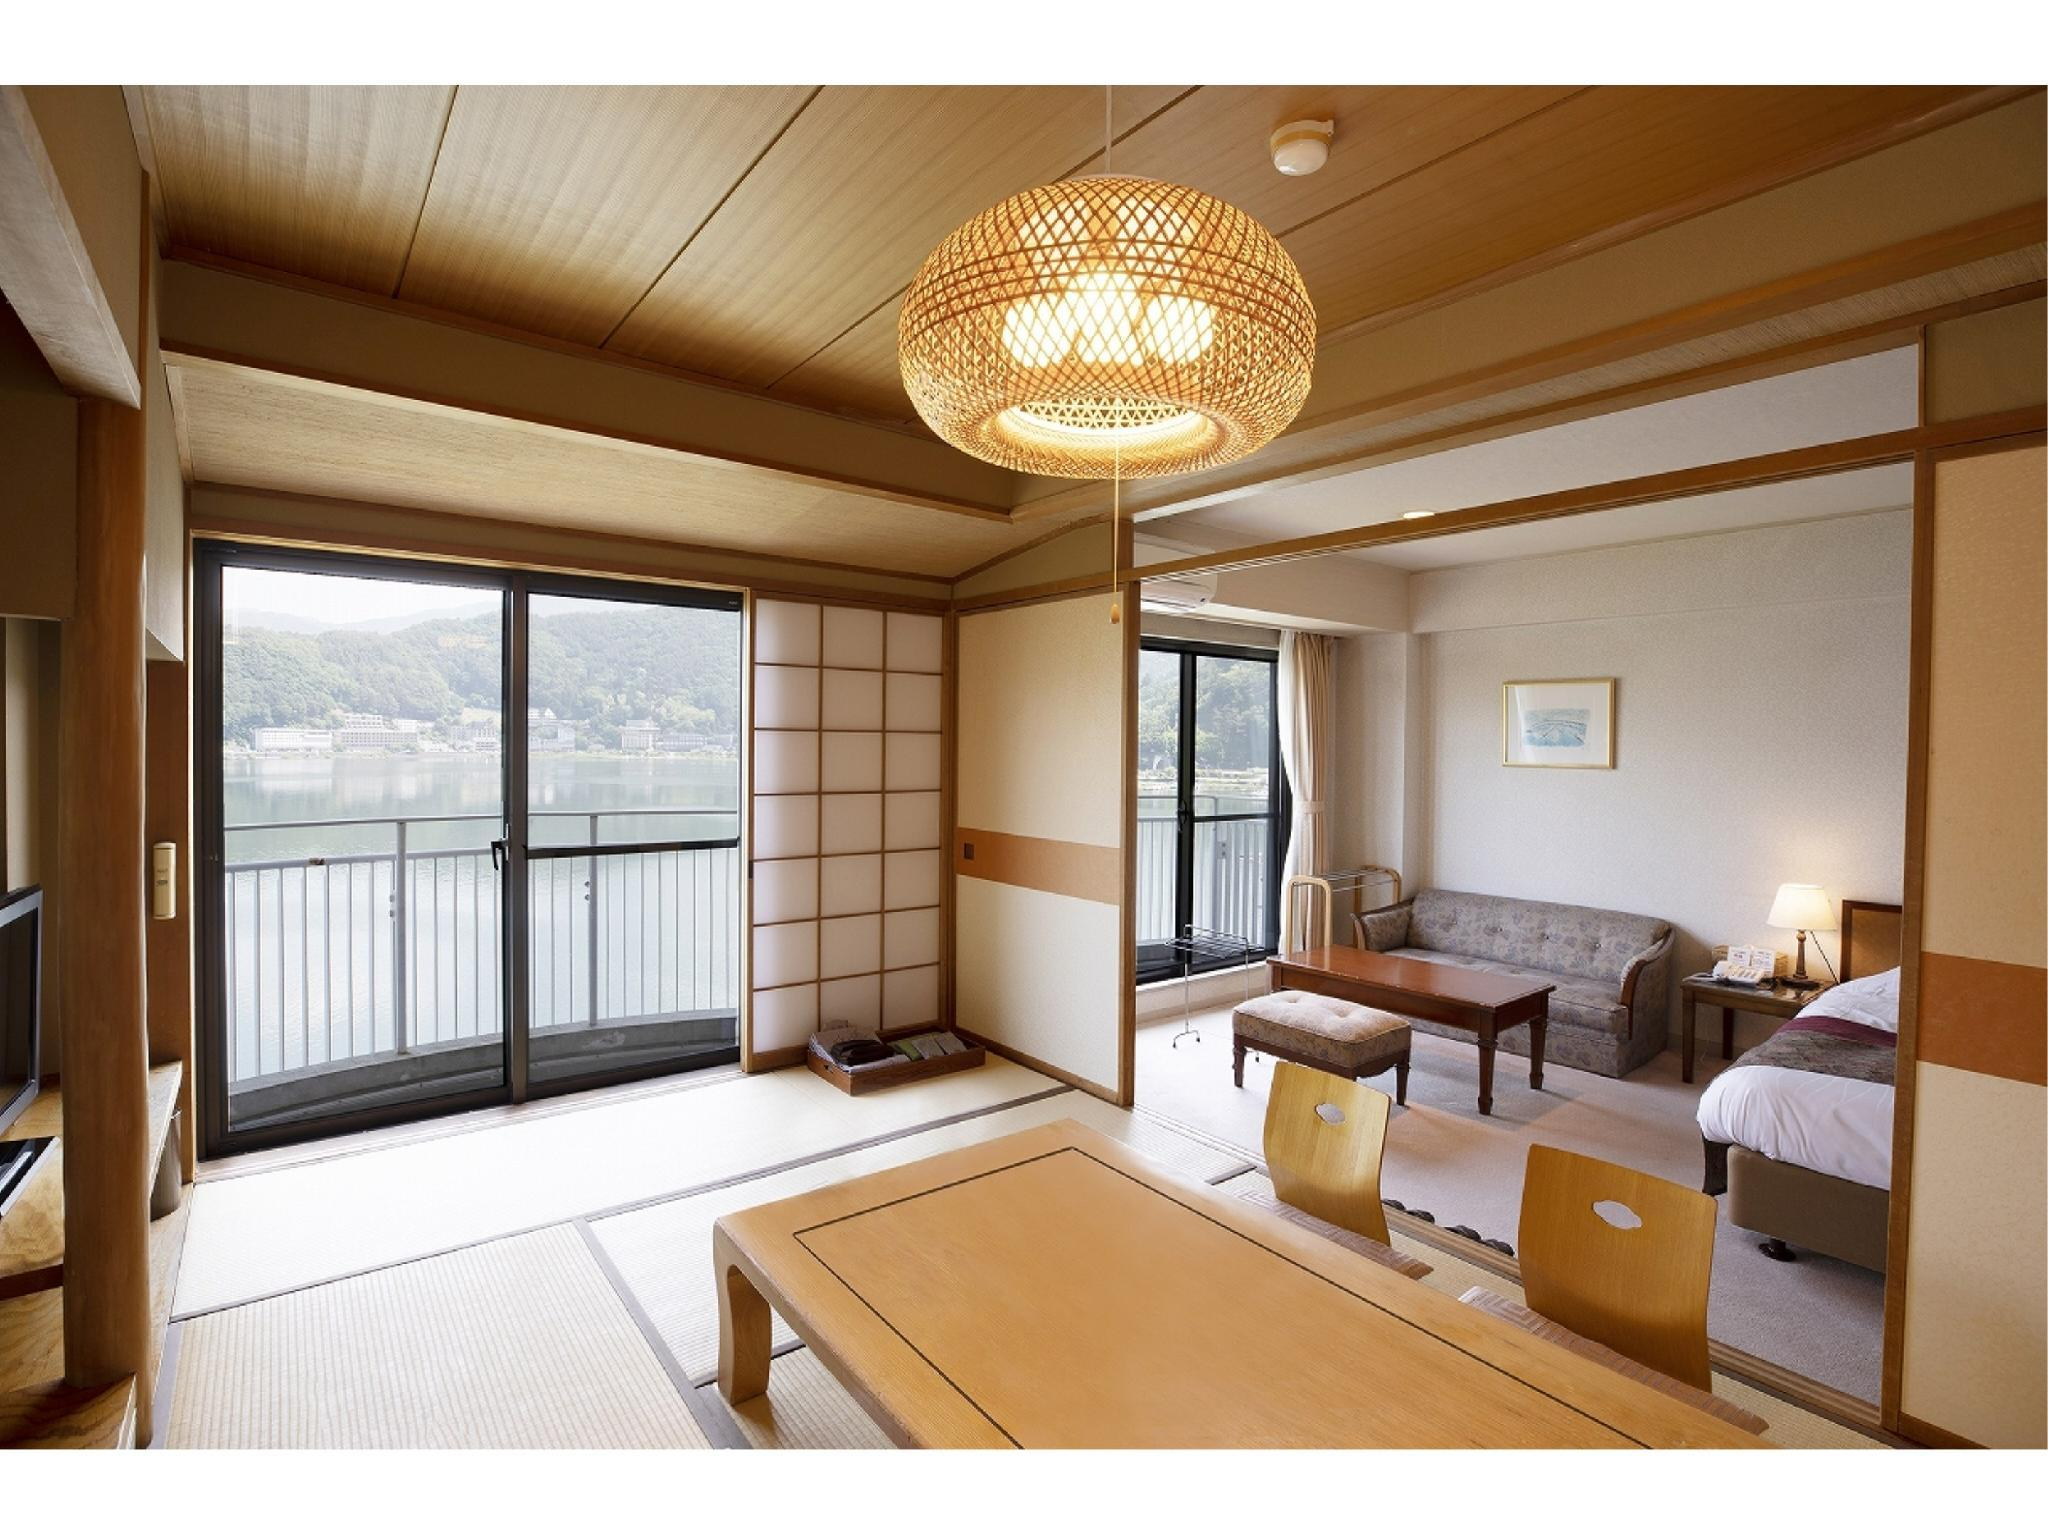 東館 和洋式房(2張床) (Japanese/Western-style Room (2 Beds, East Wing))